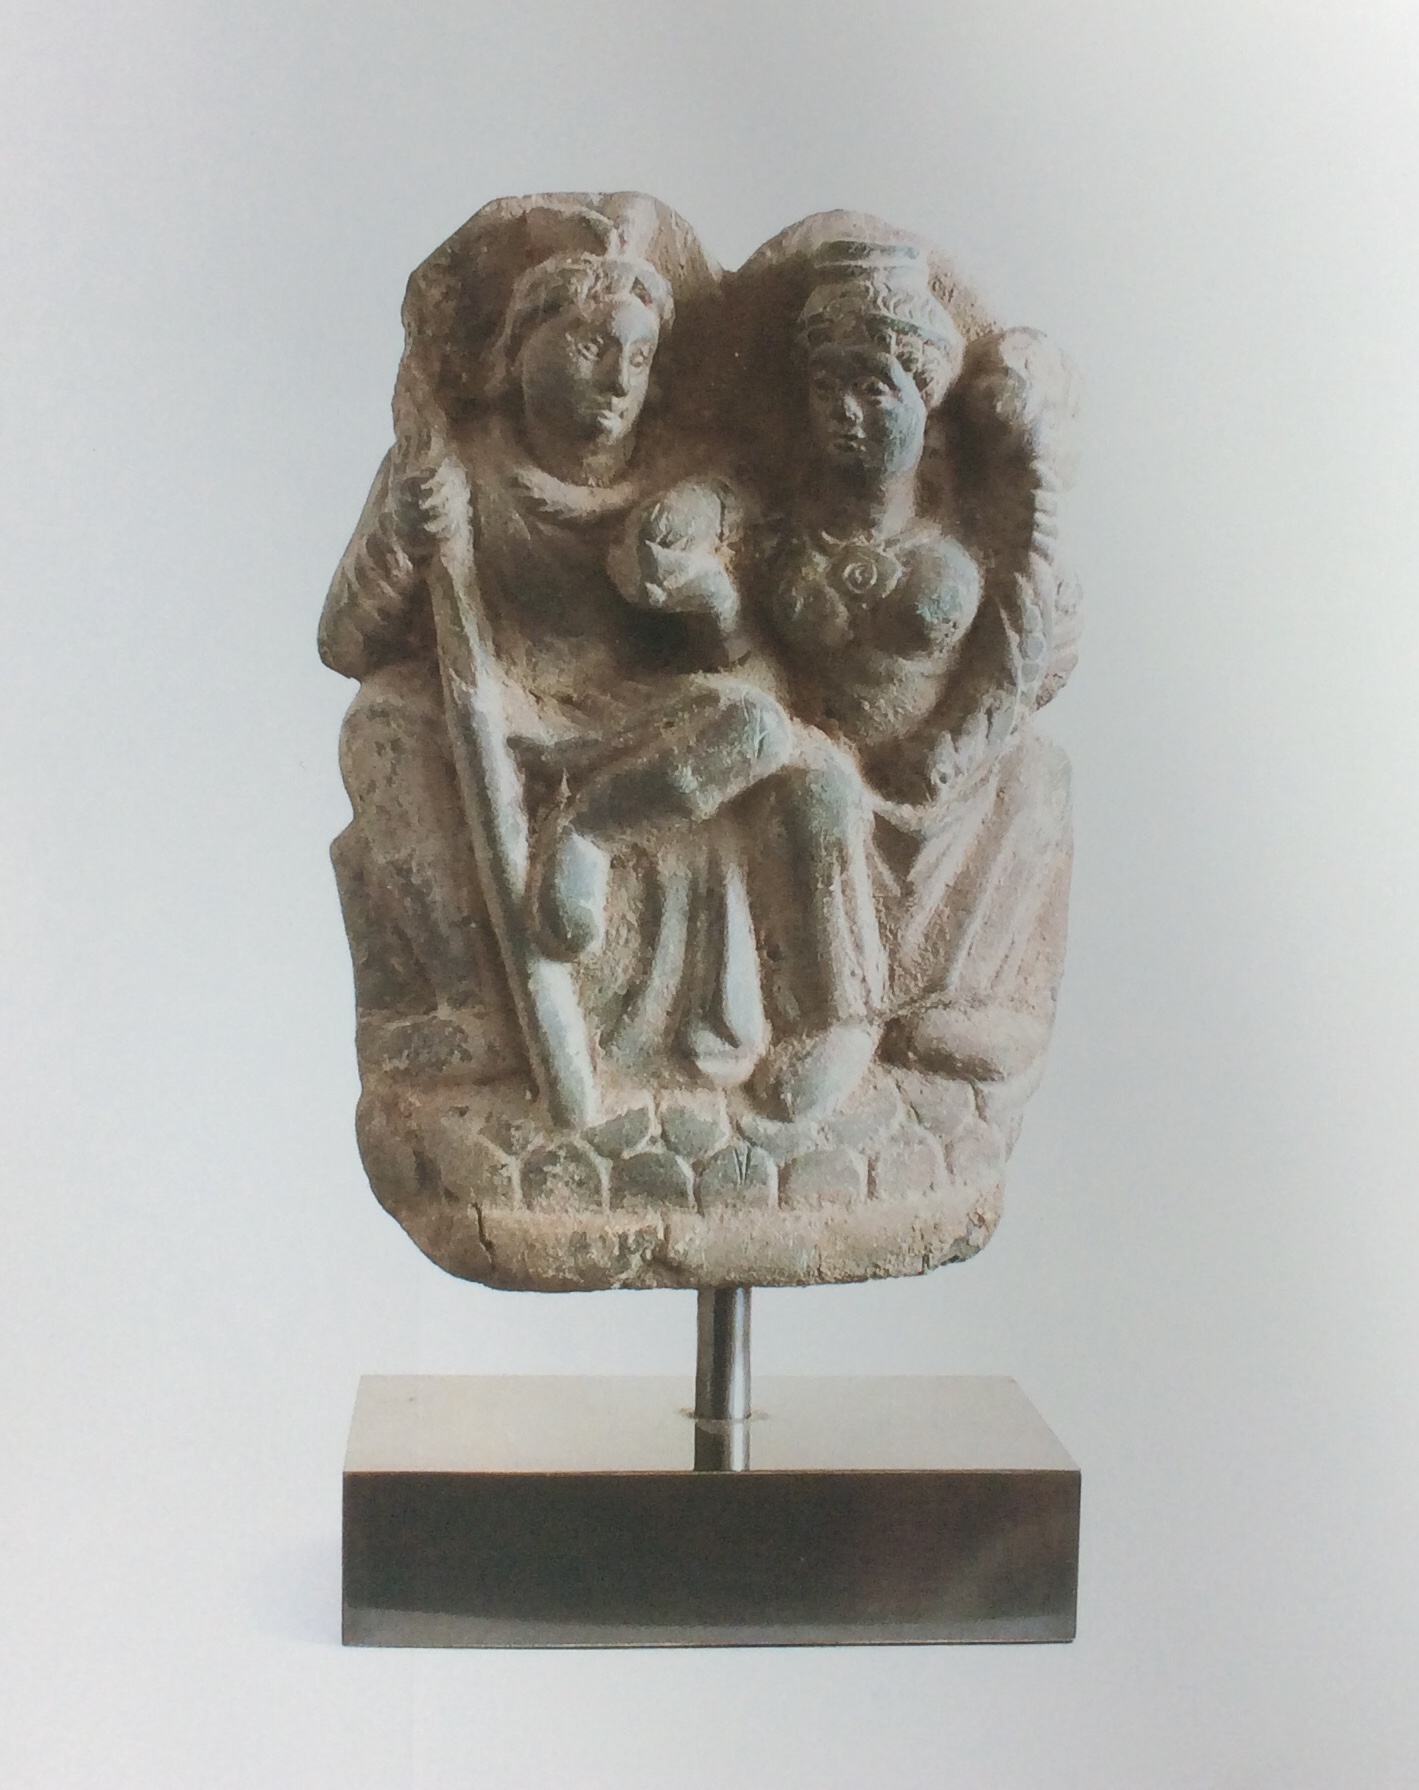 HR_ODYSSEY_ANTIQUITIES___COINS_Ghandaran_statuette_of_the_god_Panika___his_consort.jpeg